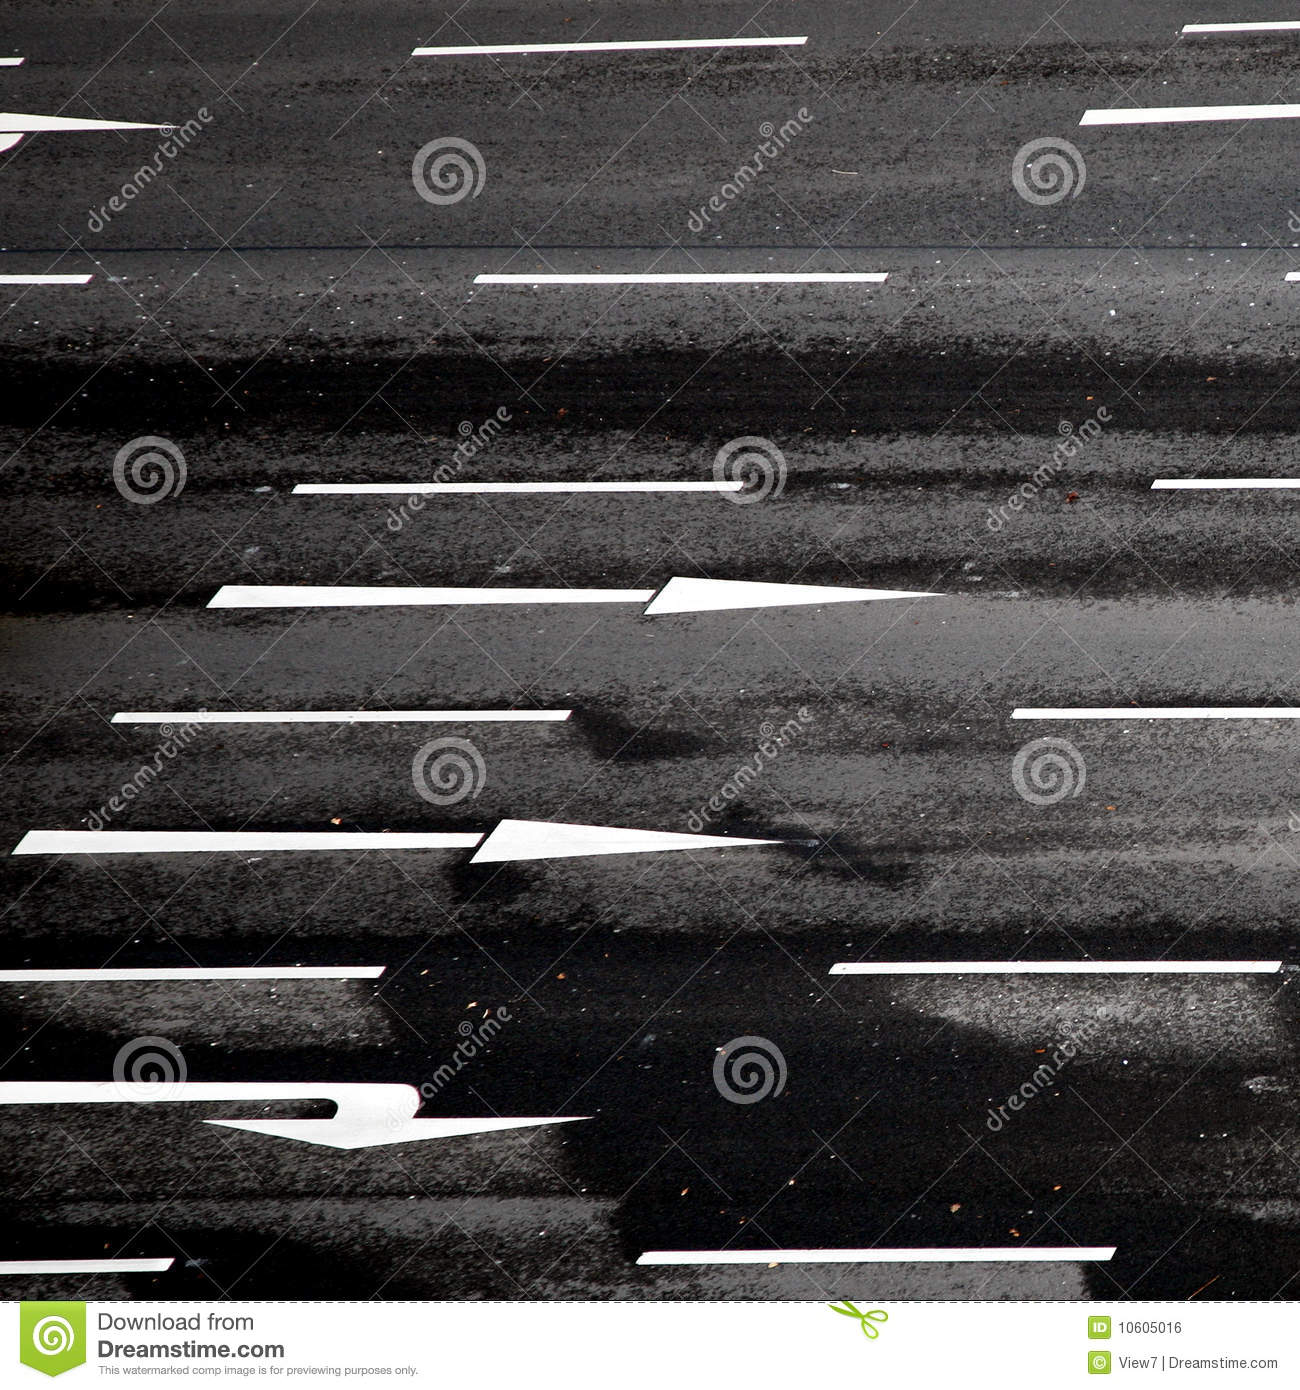 Road With Arrows Royalty Free Stock Image - Image: 10605016